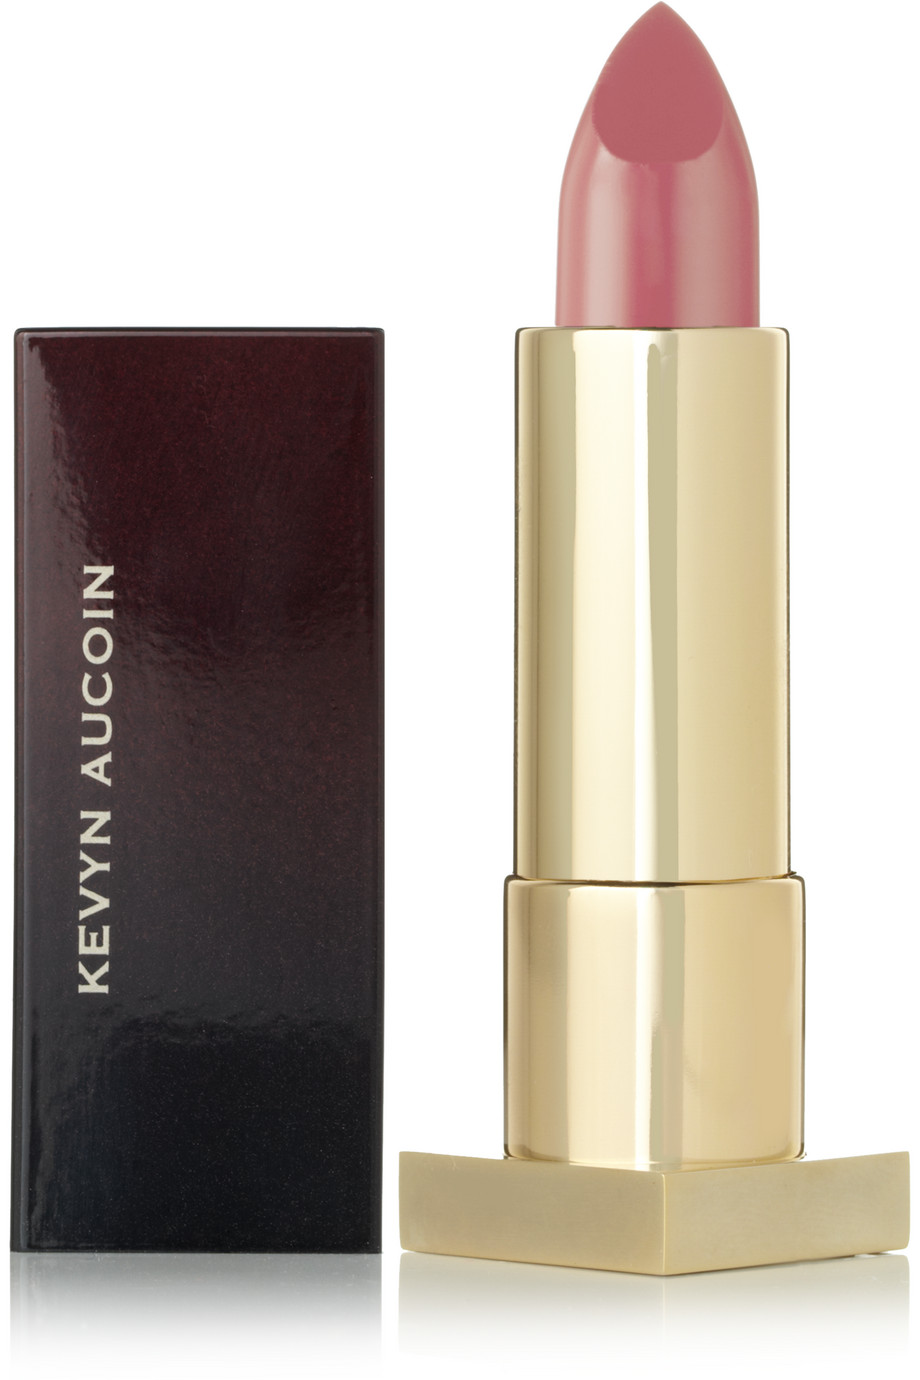 The Expert Lip Color - Sireedan, by Kevyn Aucoin